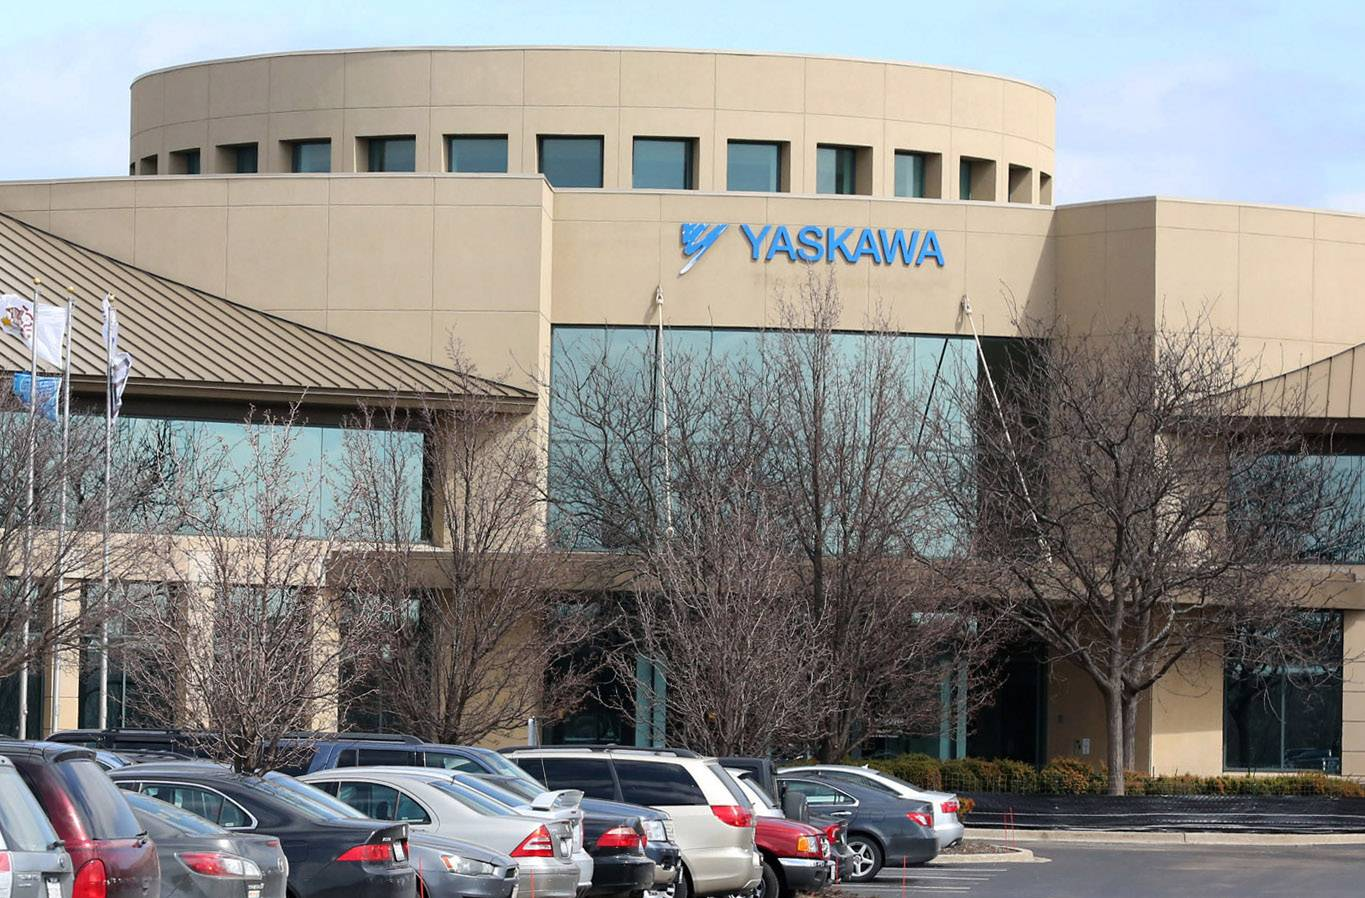 Yaskawa America Inc. in Waukegan, where 50-year-old Tomohiro Hirayama worked as the vice president of motion control business planning & marketing for the U.S. subsidiary of Japan-based Yaskawa Electric Corp.